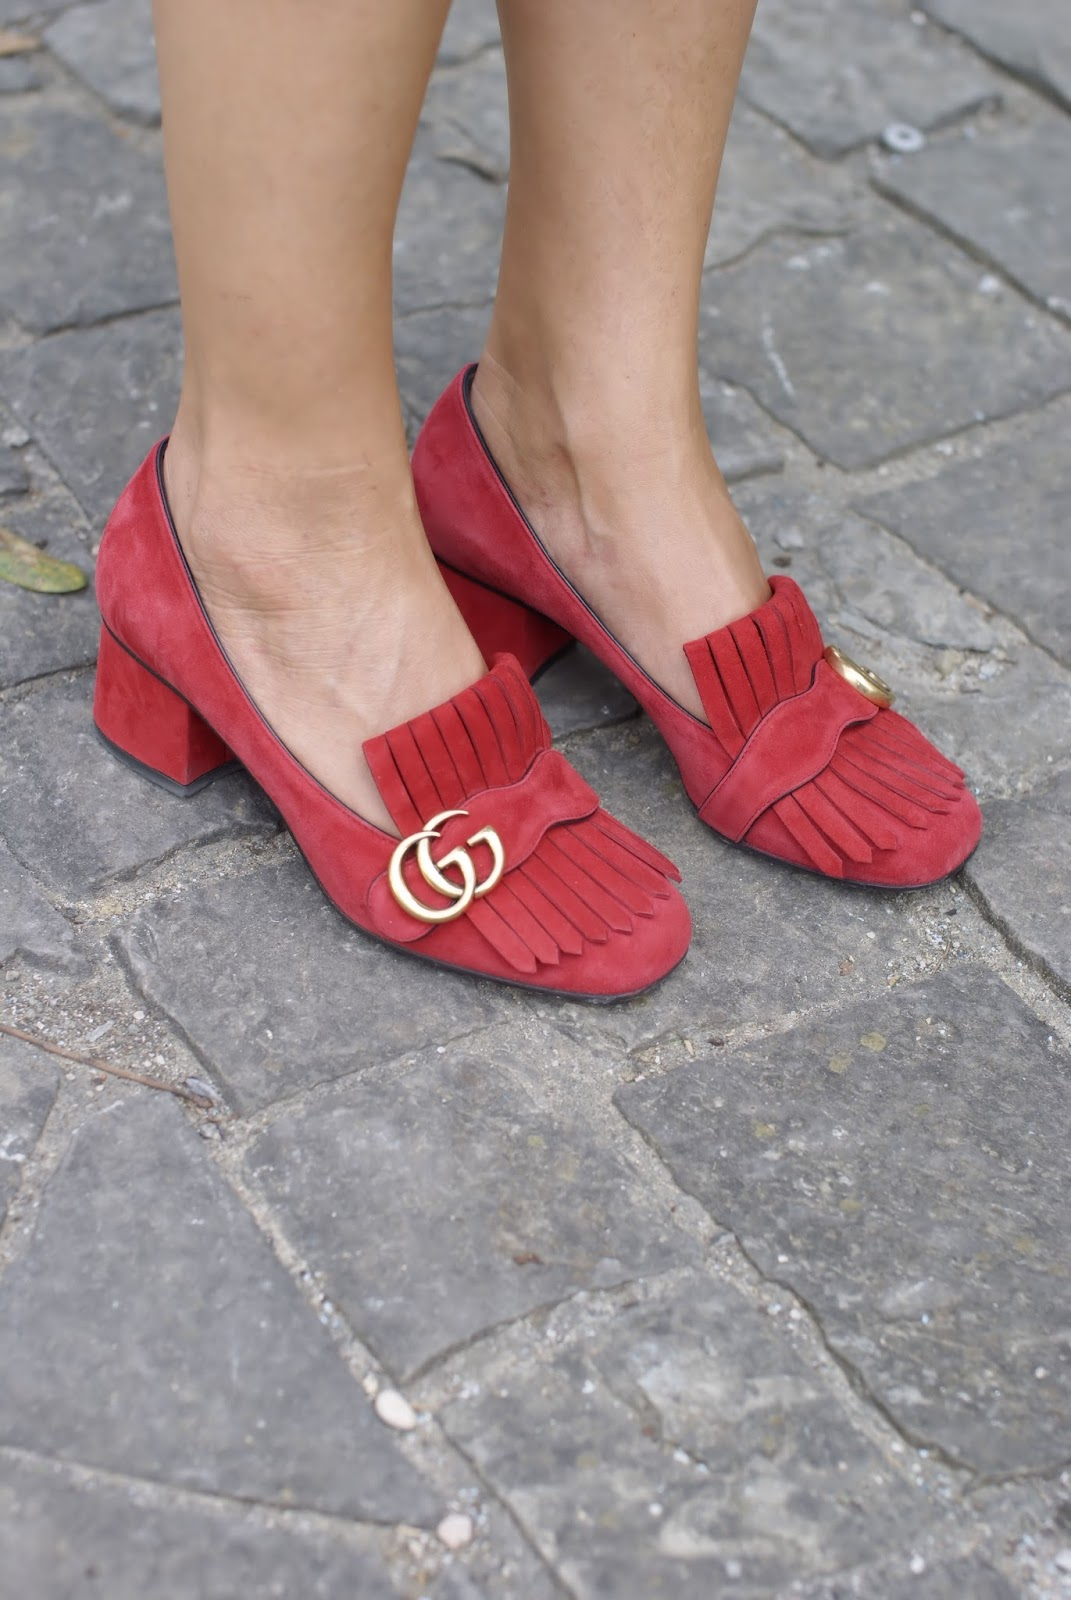 Gucci red loafers on Fashion and Cookies fashion blog, fashion blogger style